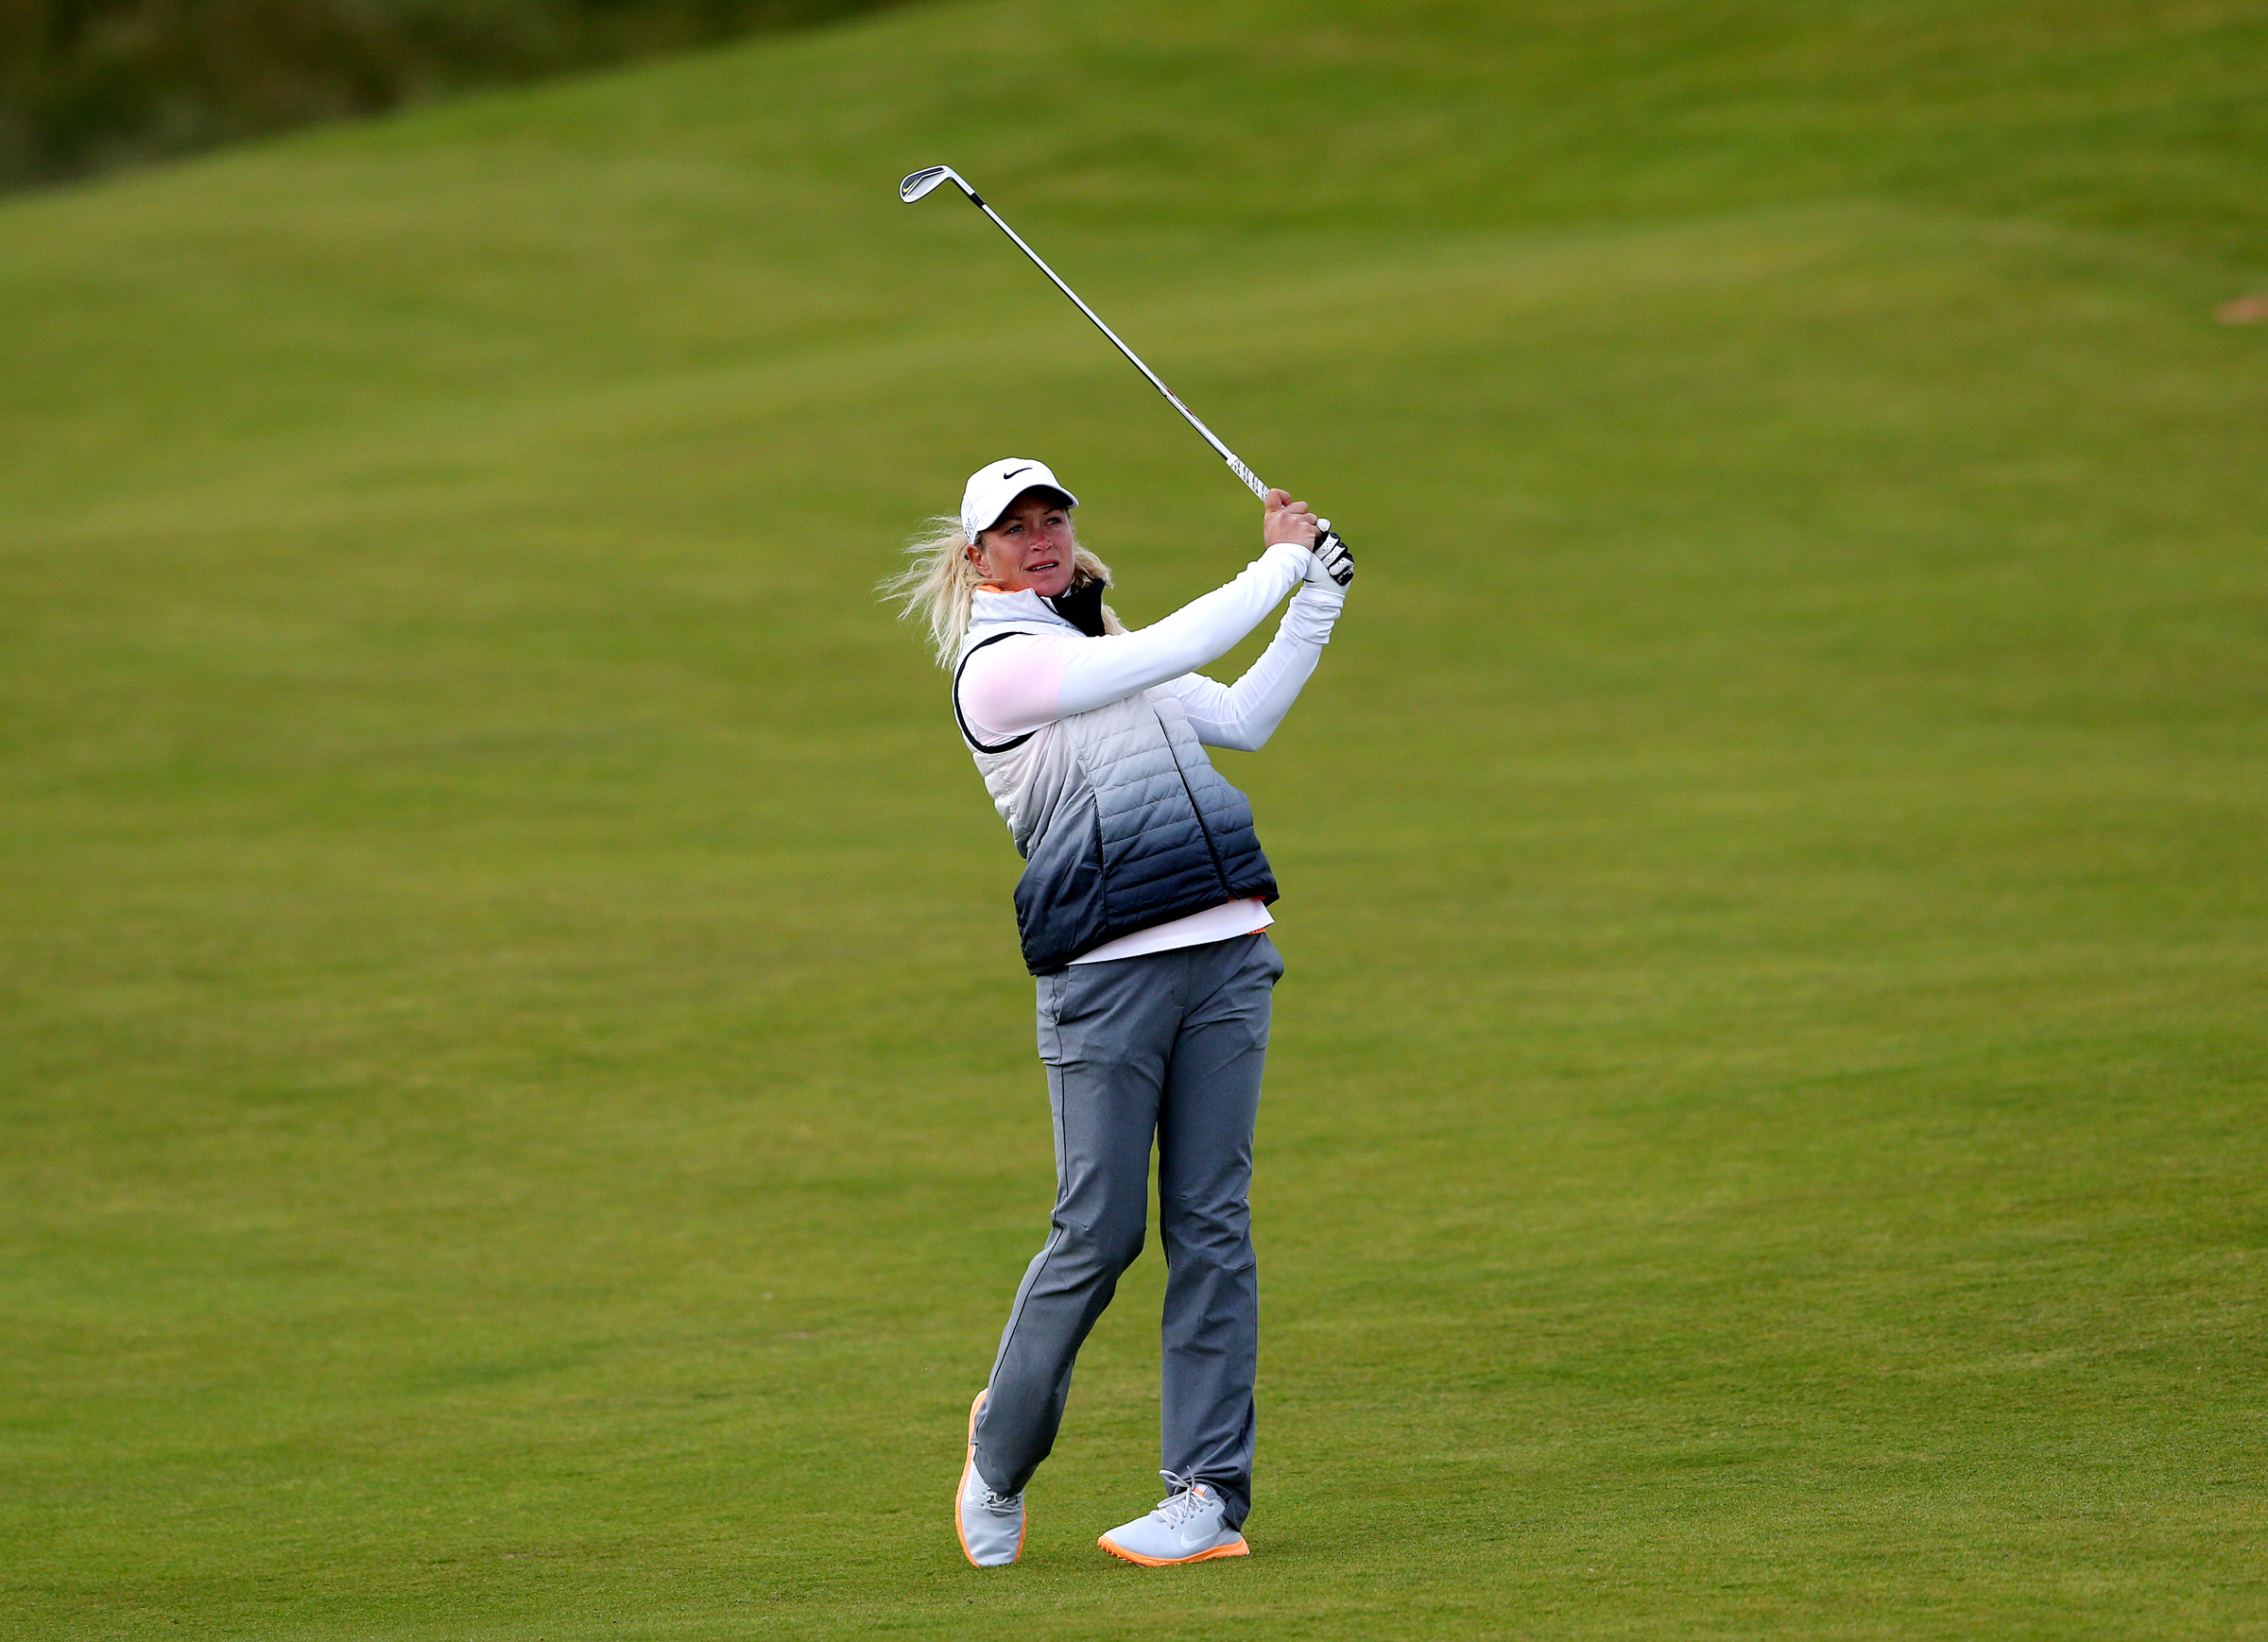 Suzann Pettersen of Norway plays her second shot on the 7th fairway during the second day of the Women's British Open golf championship on the Turnberry golf course in Turnberry, Scotland, Friday, July 31, 2015. (AP Photo/Scott Heppell)